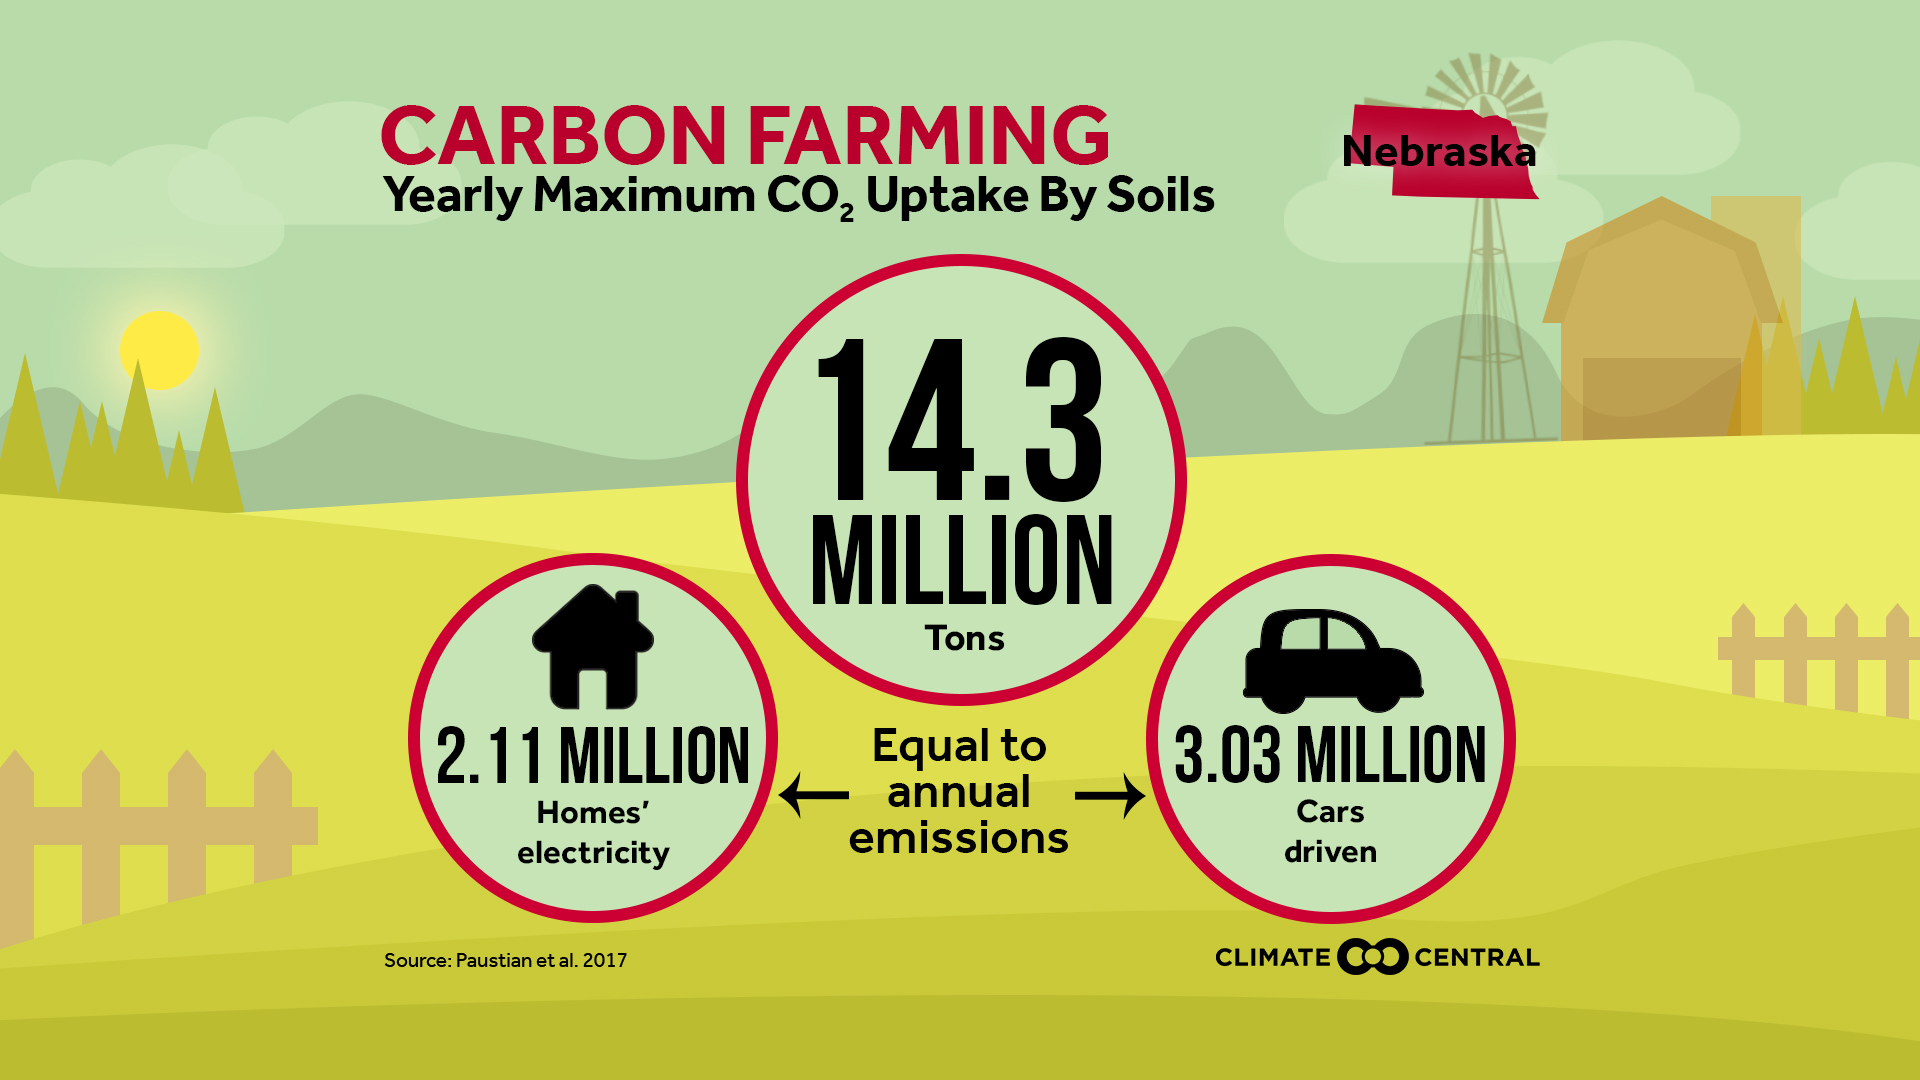 Carbon Farming: CO2 Uptake by Soils